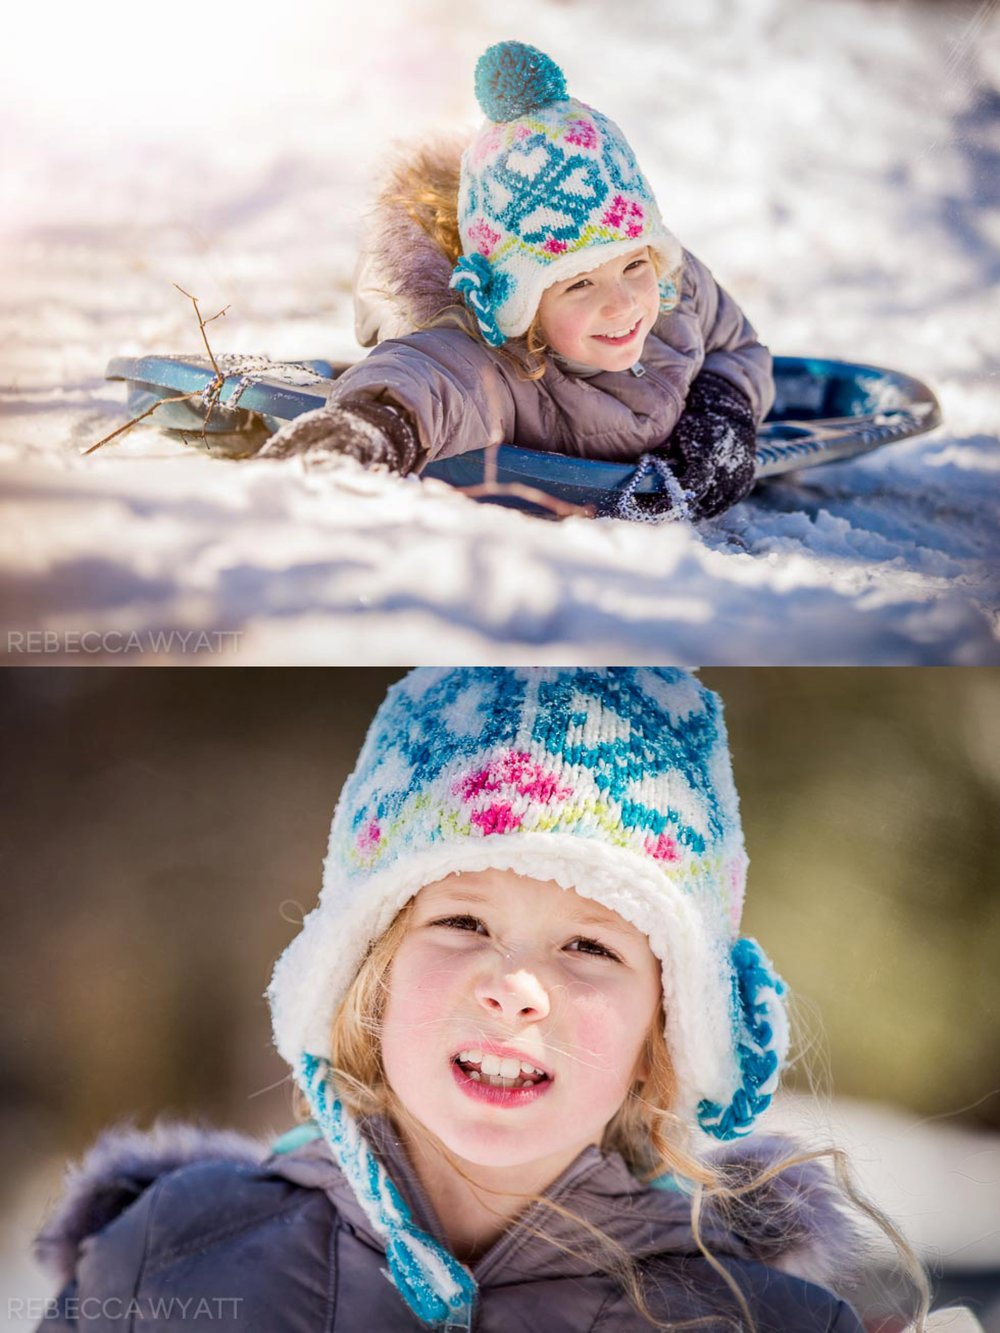 365-II,bartley,cm portfolio,feb 2015 cm,my favvorites,sled riding,snow day,